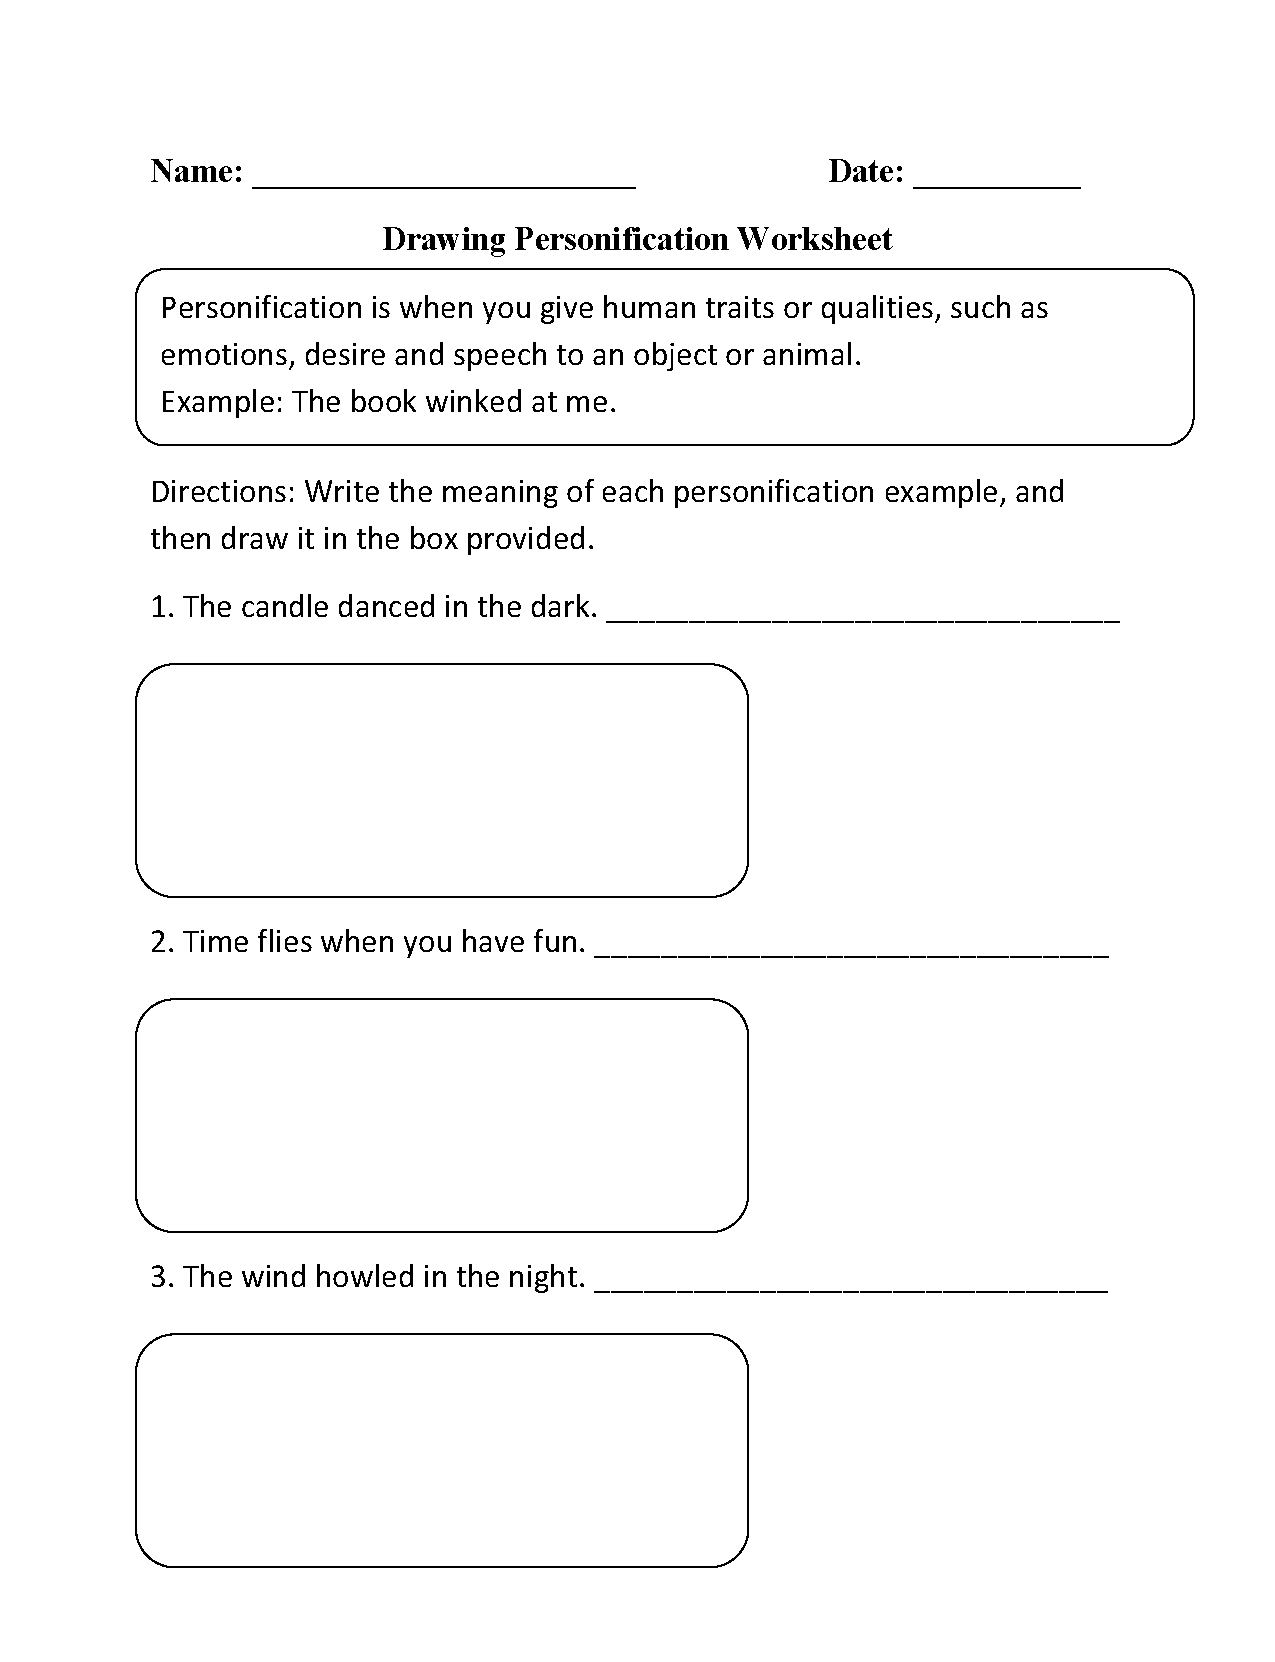 Worksheets Personification Worksheet figurative language worksheets personification worksheet